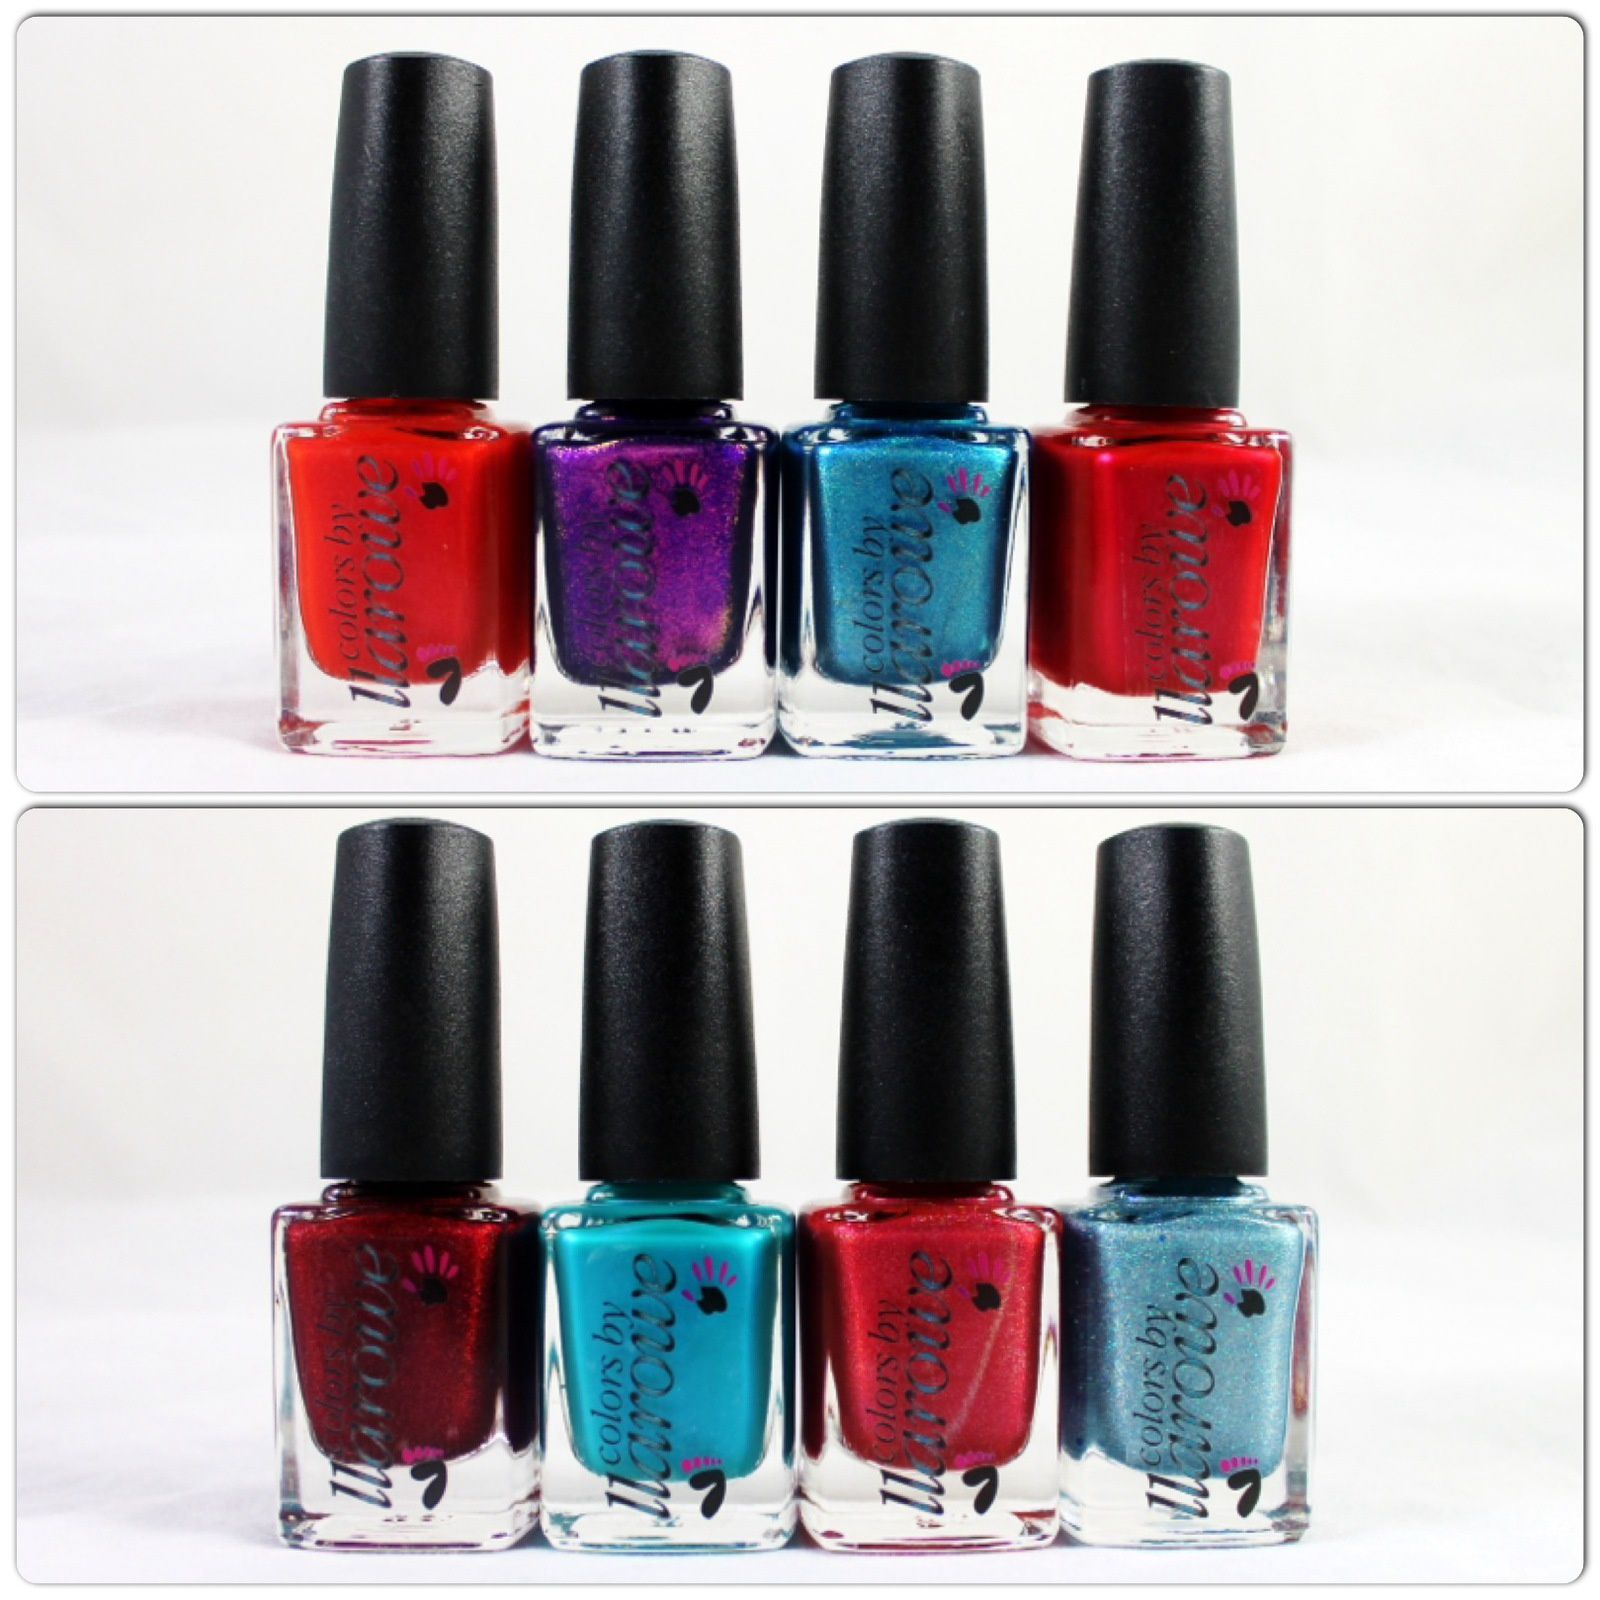 Colors by Llarowe Coral Confusion, Connie you Saucy Minx, Young Turks, Julie Julie Julie, The Mighty Red Baron, Waters of Belize, Lucy I'm Home! & Shimmering Waters.